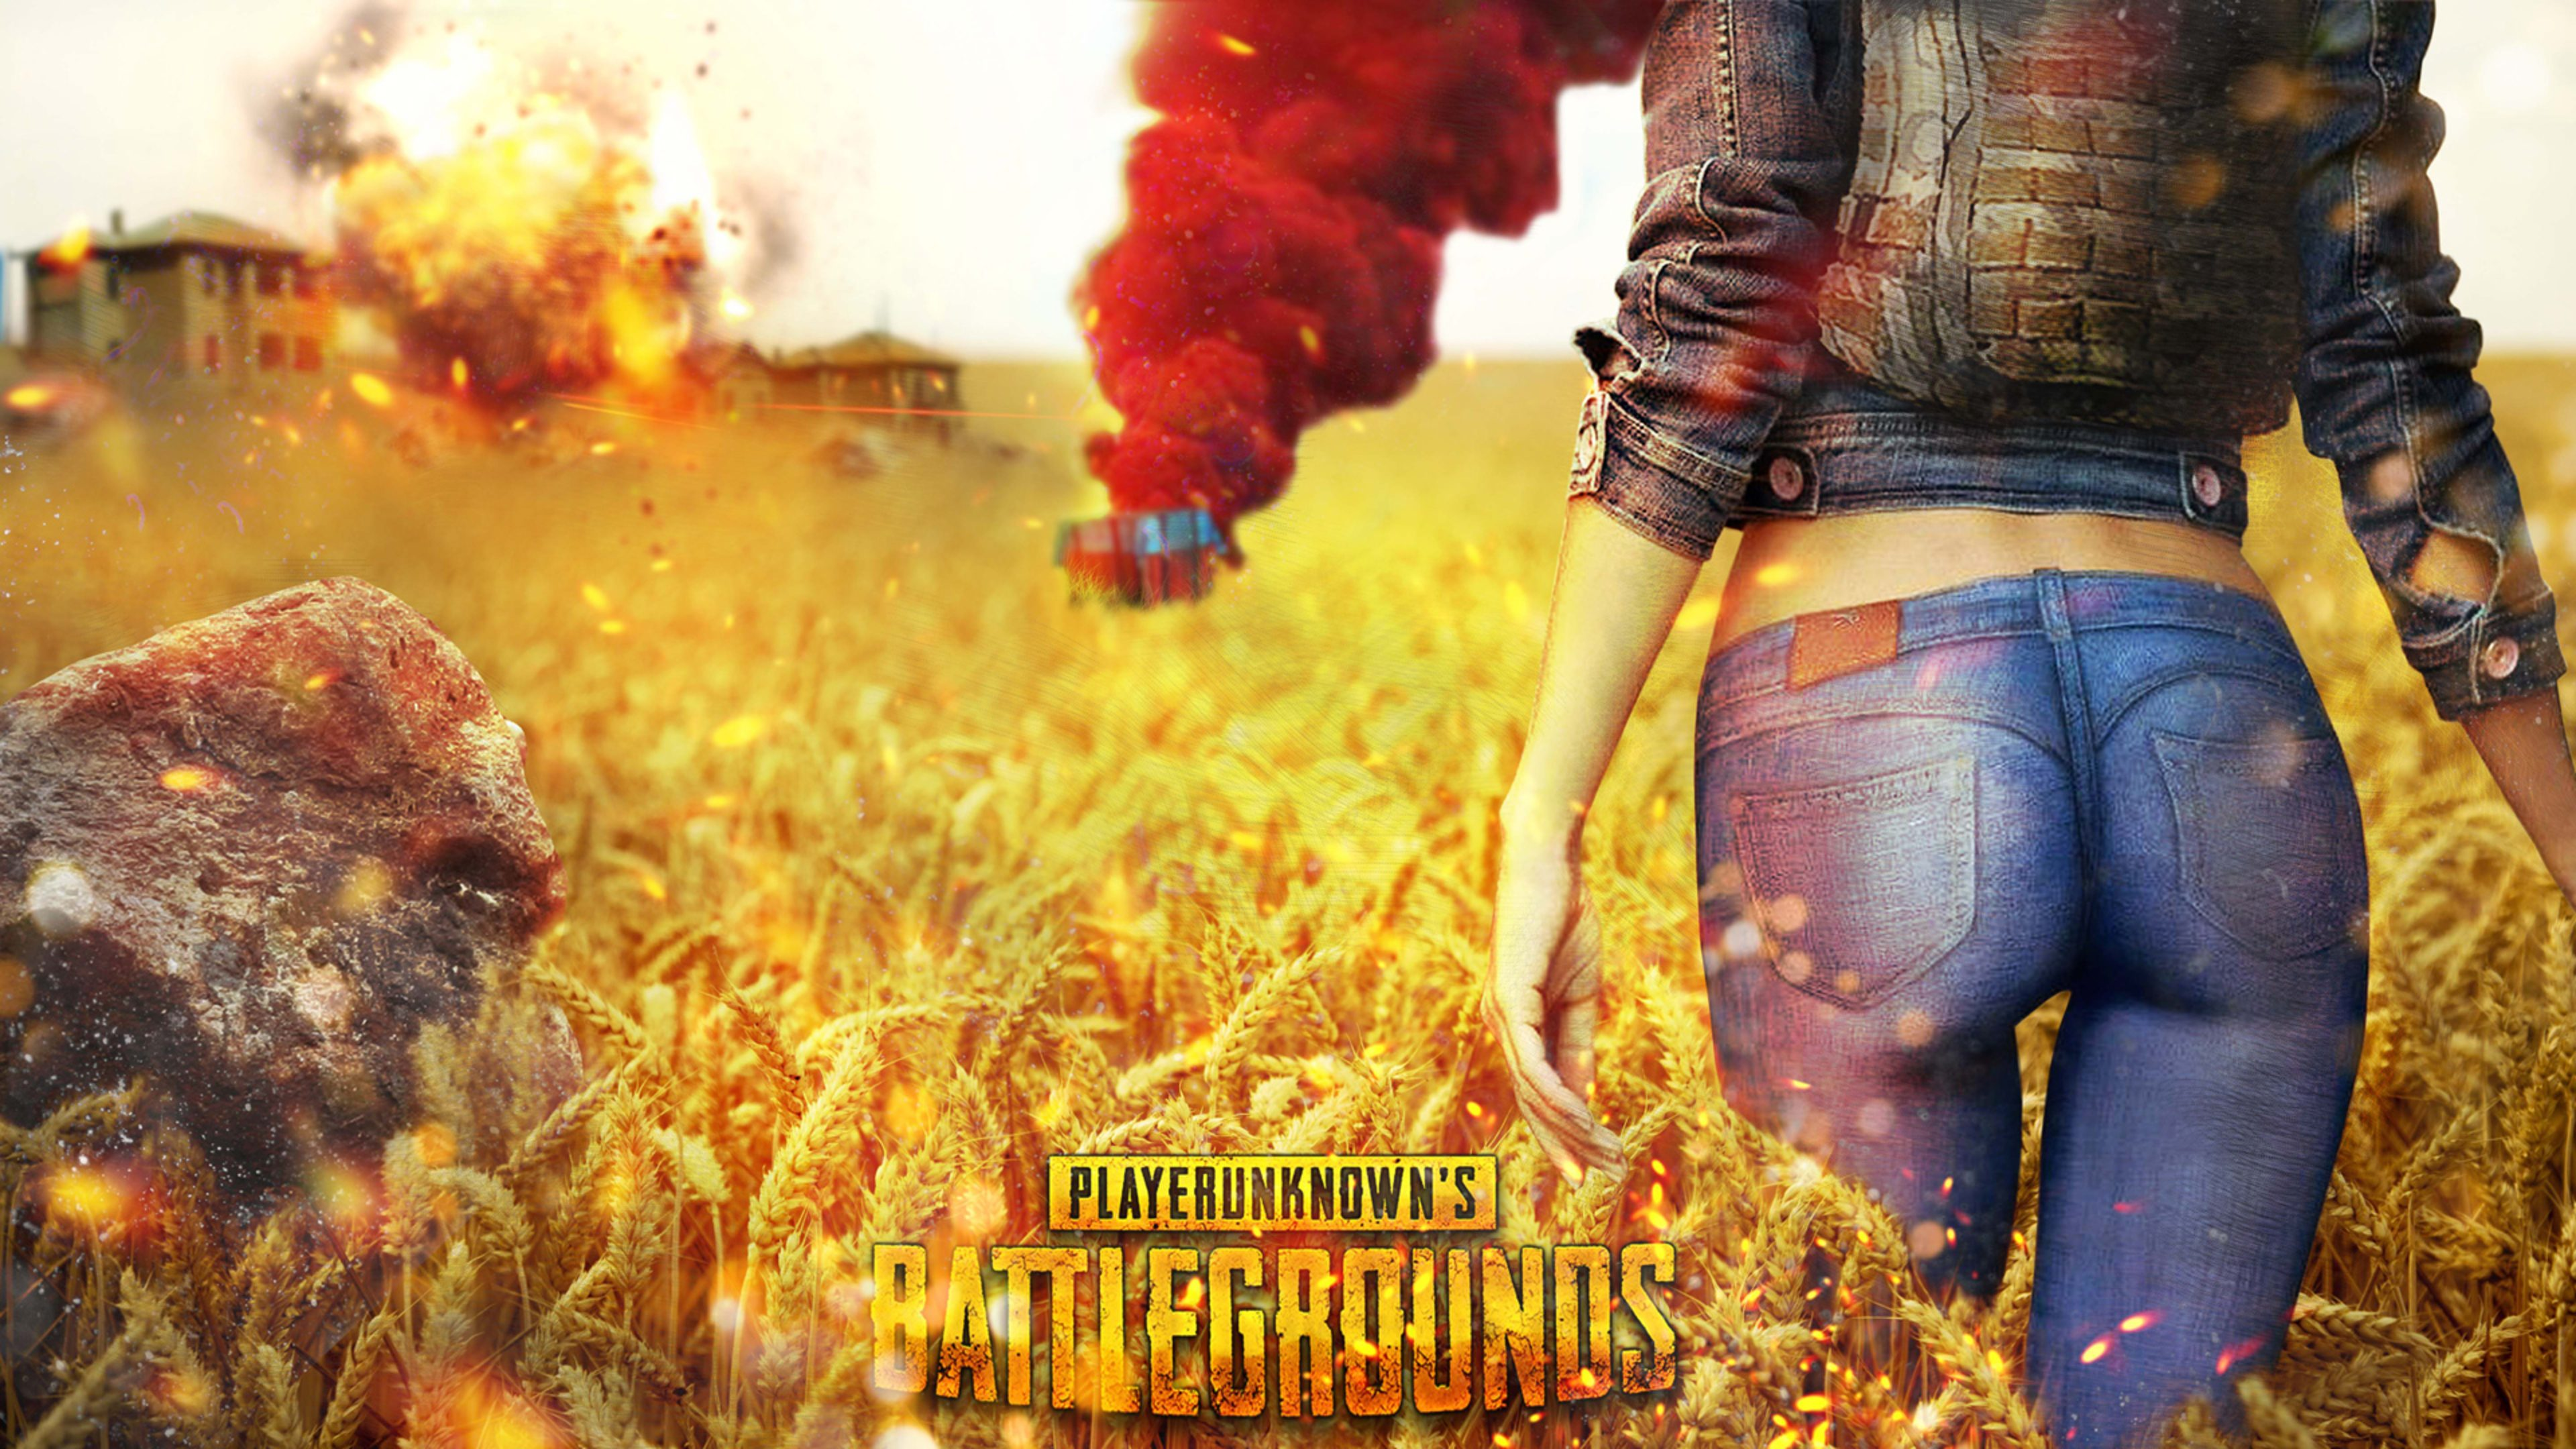 Pubg Ultra Hd Pc: Playerunknowns Battlegrounds PUBG Cover 4K Wallpaper